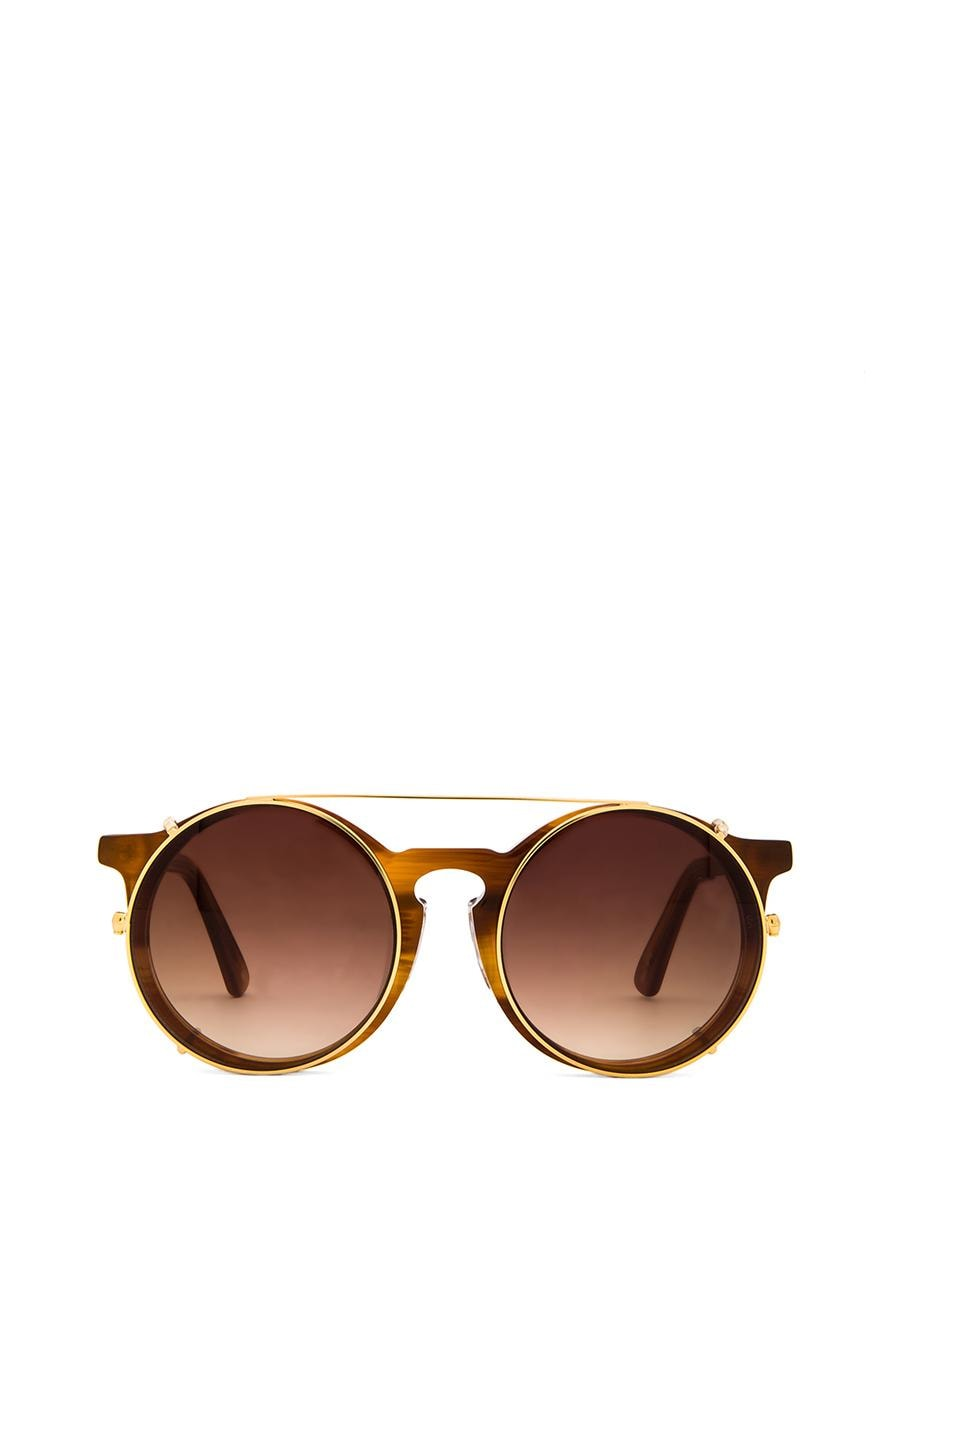 Sunday Somewhere Matahari Sunglasses in Mid Choc Tort